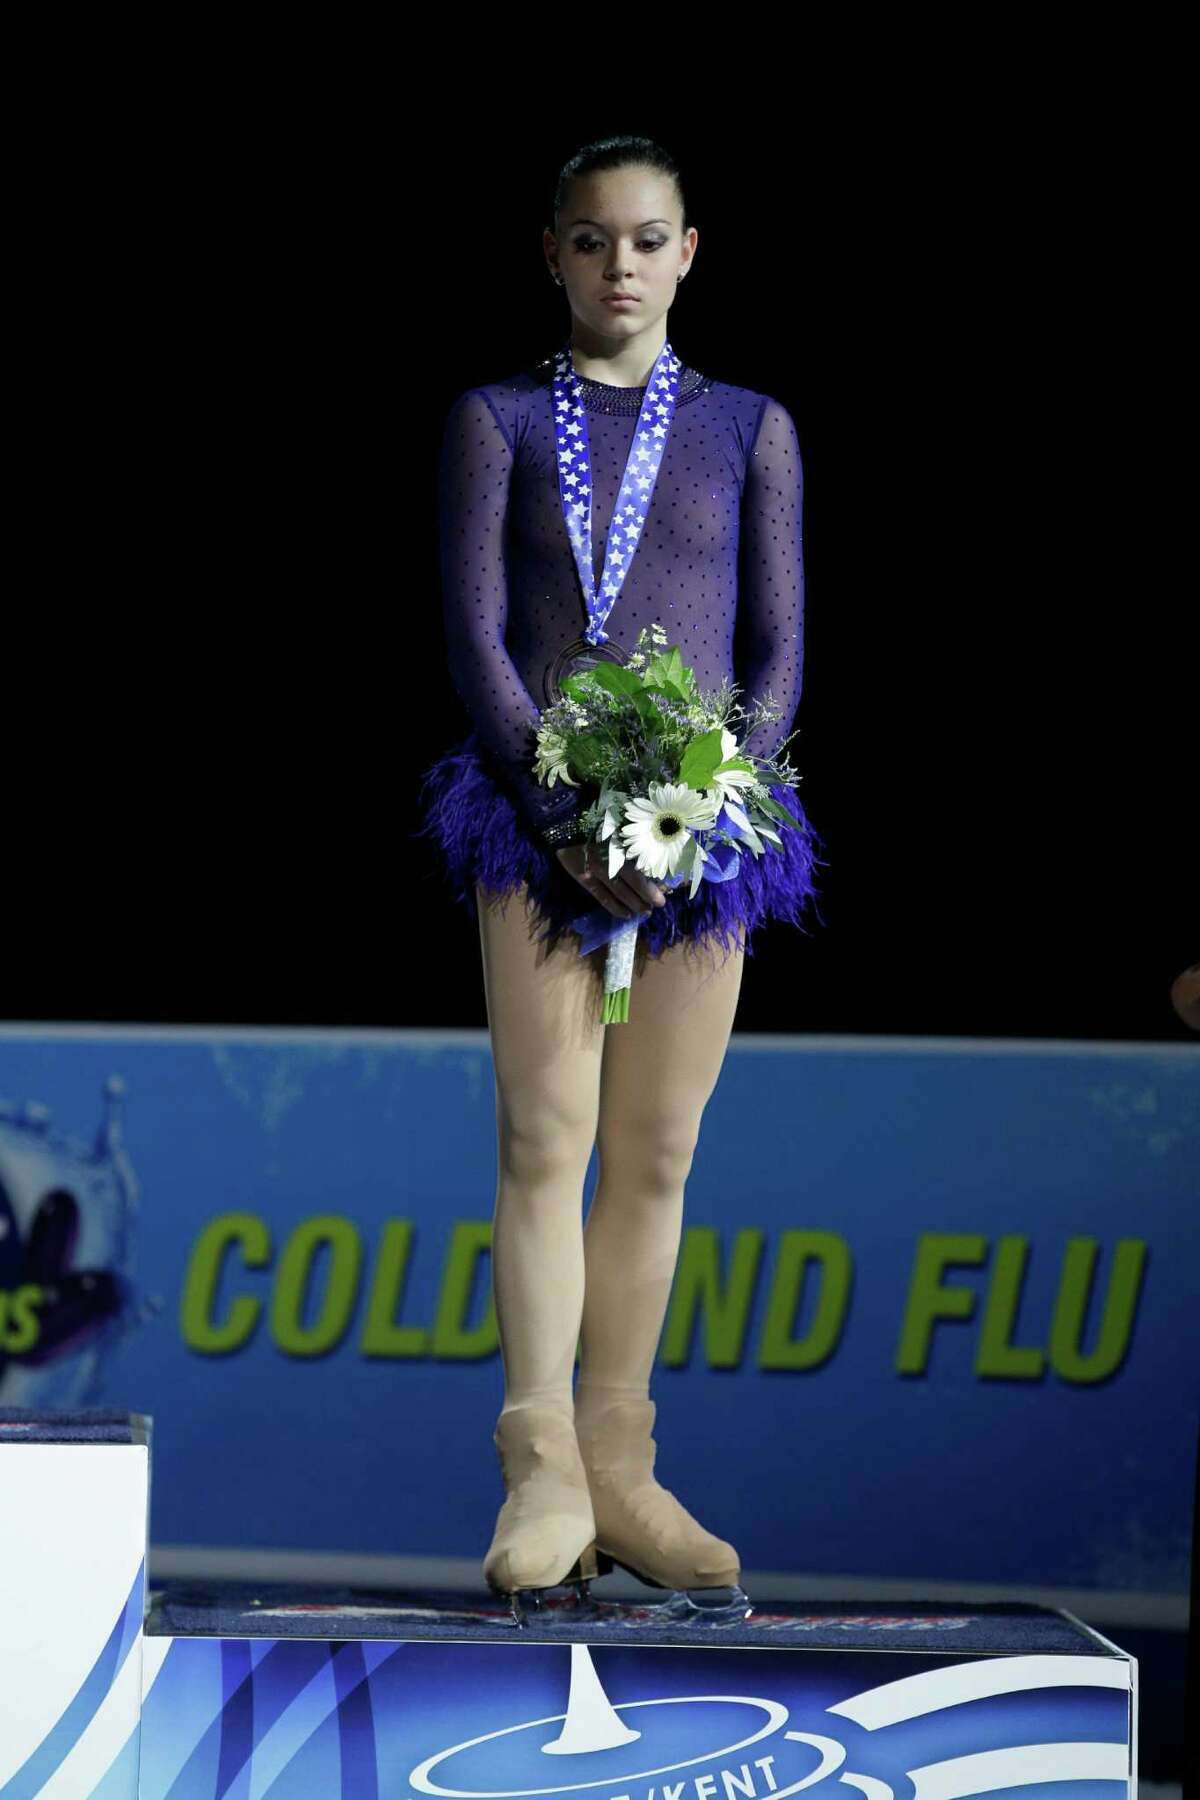 Russia's Adelina Sotnikova, stands on the podium after winning the bronze medal in the ladies free event.